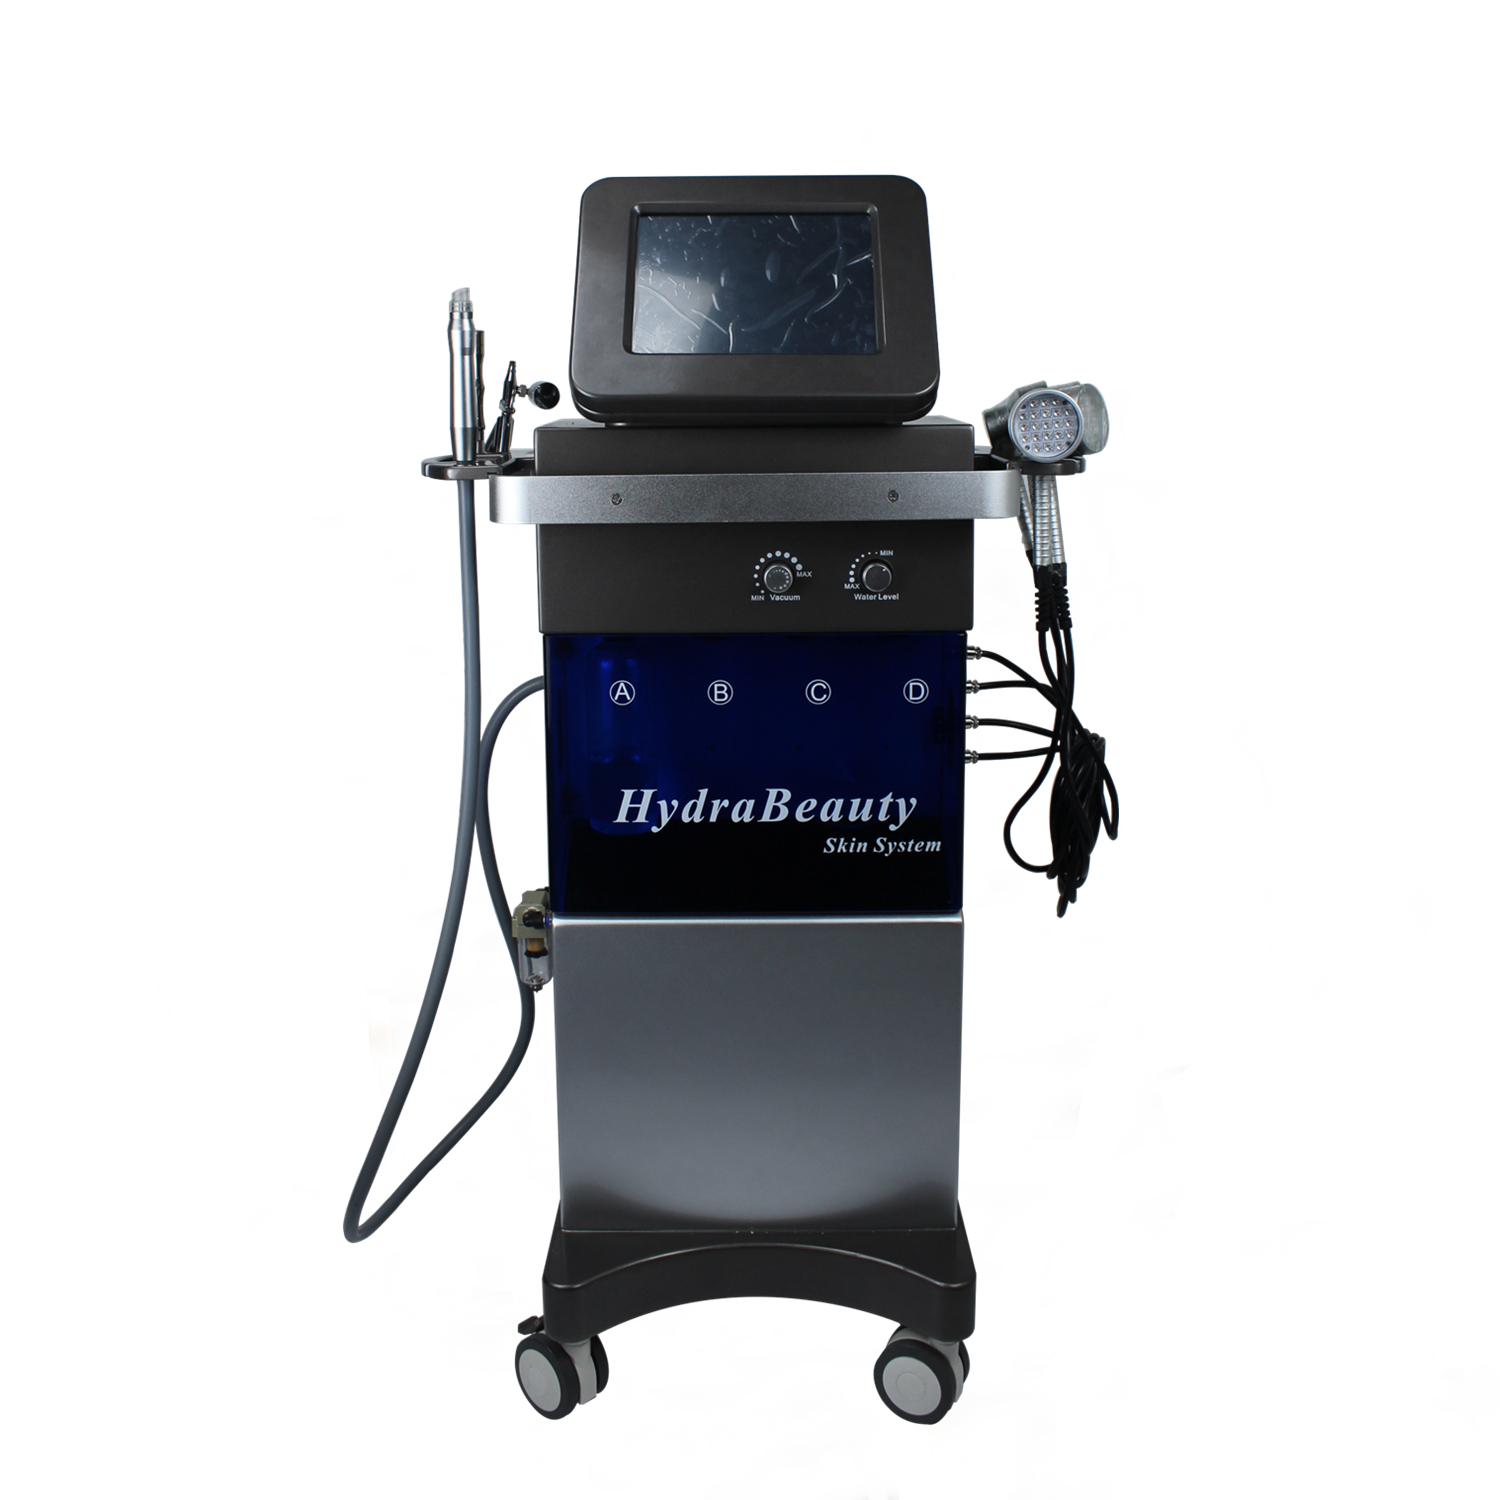 4 in 1 Oxygen Hydrafacial Therapy Aqua Skin Peel Facial Machine for Sale with PDT Light